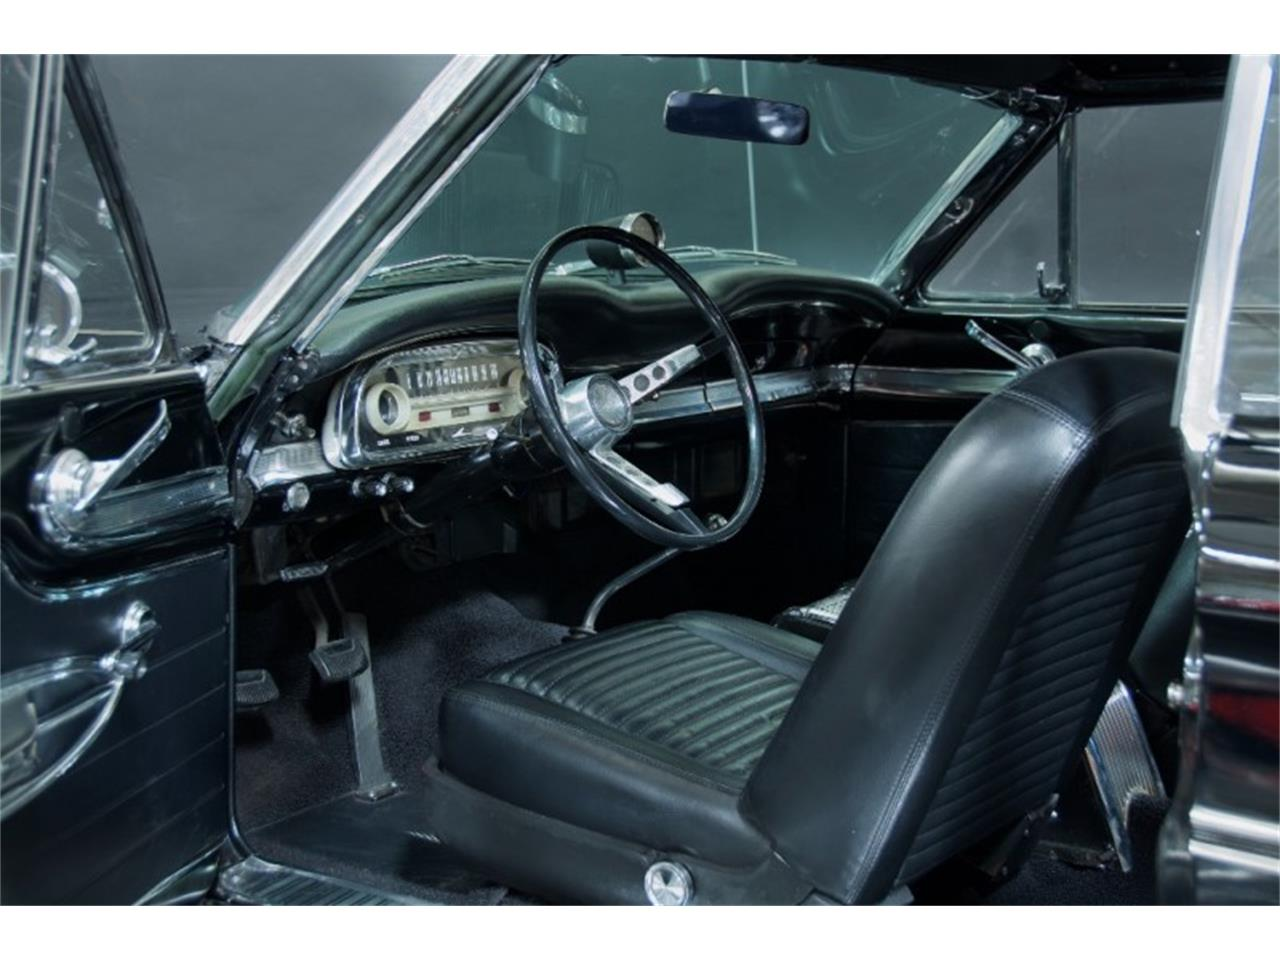 1963 Ford Falcon for sale in Milpitas, CA – photo 47